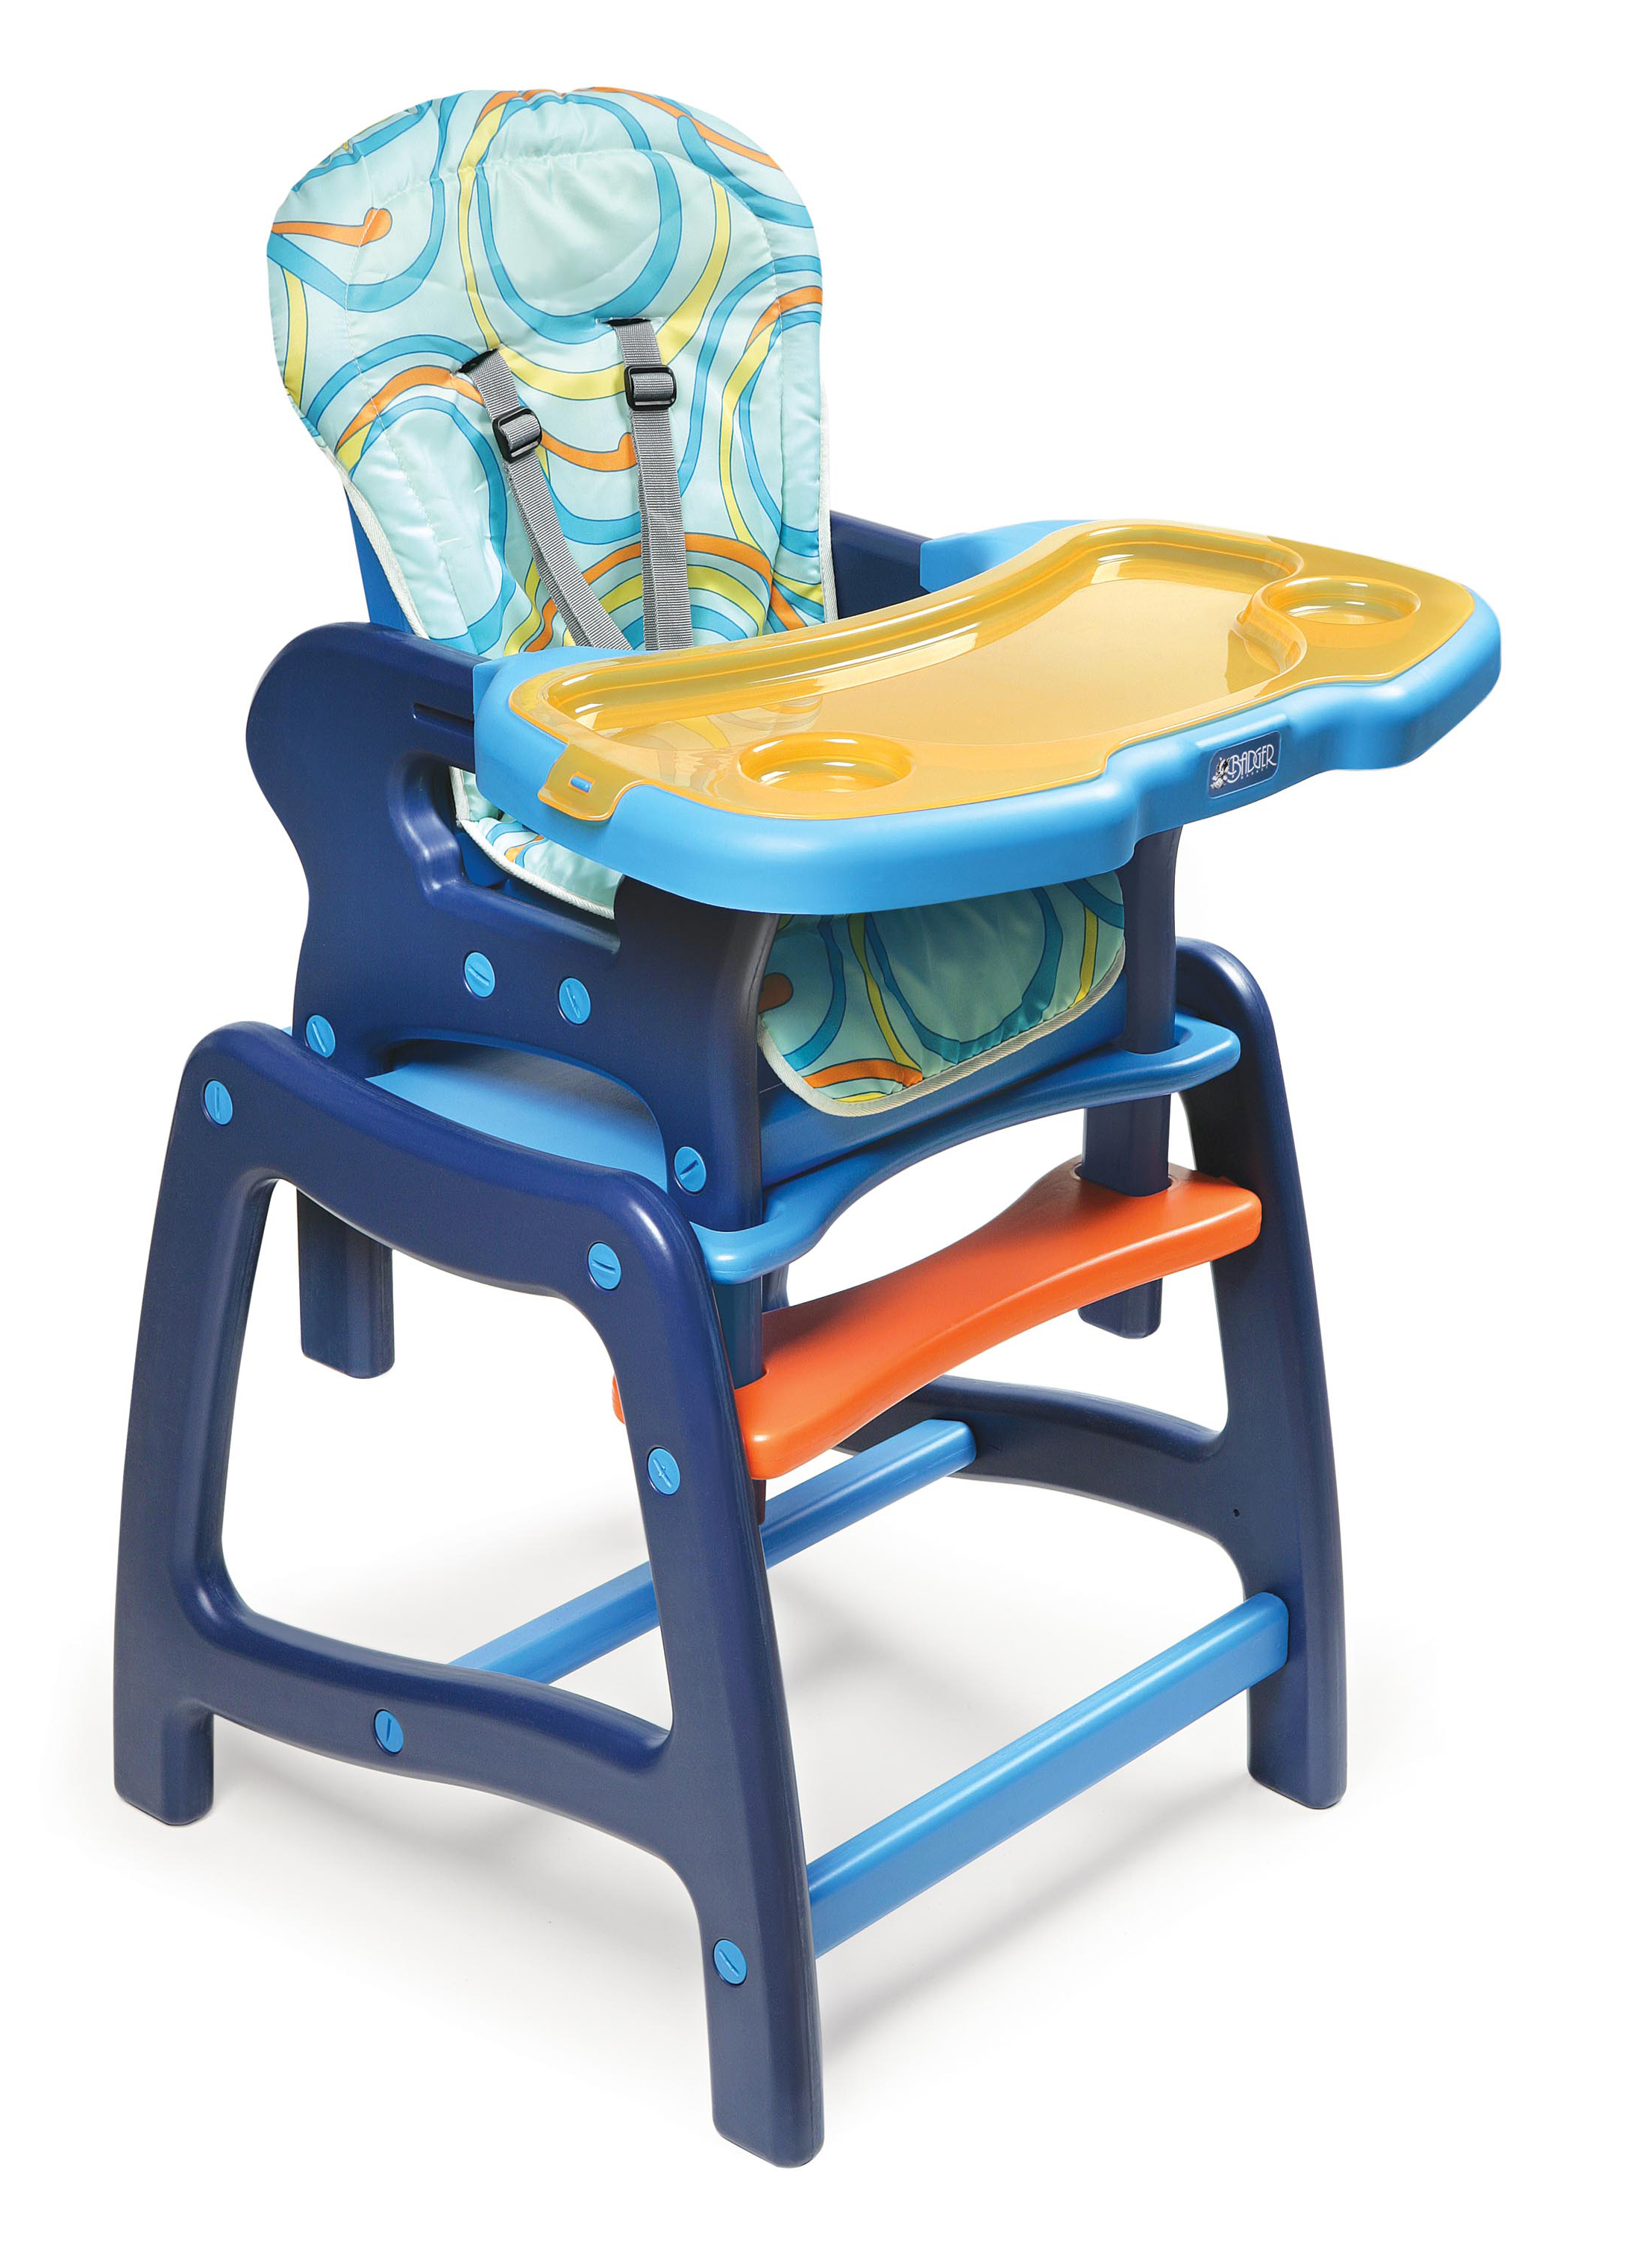 Badger Basket Envee Baby High Chair with Playtable Conversion, Blue